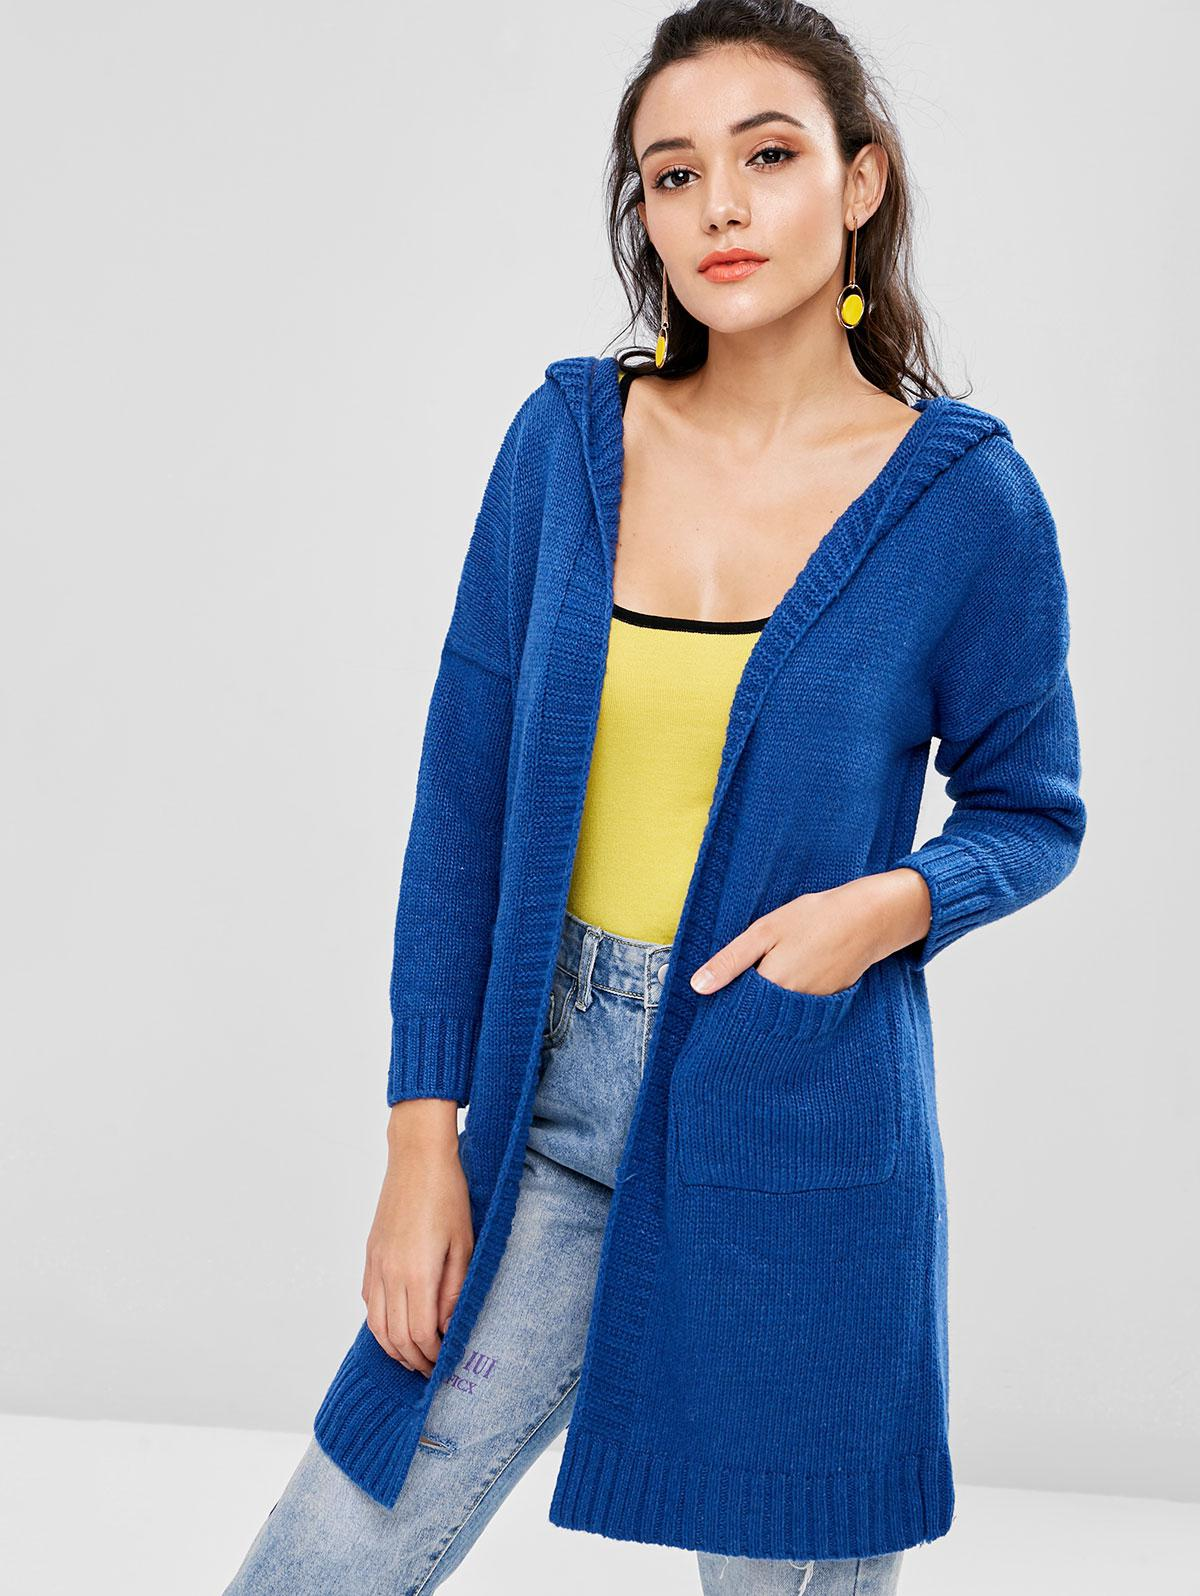 Patch Pocket Hooded Long Oversized Cardigan